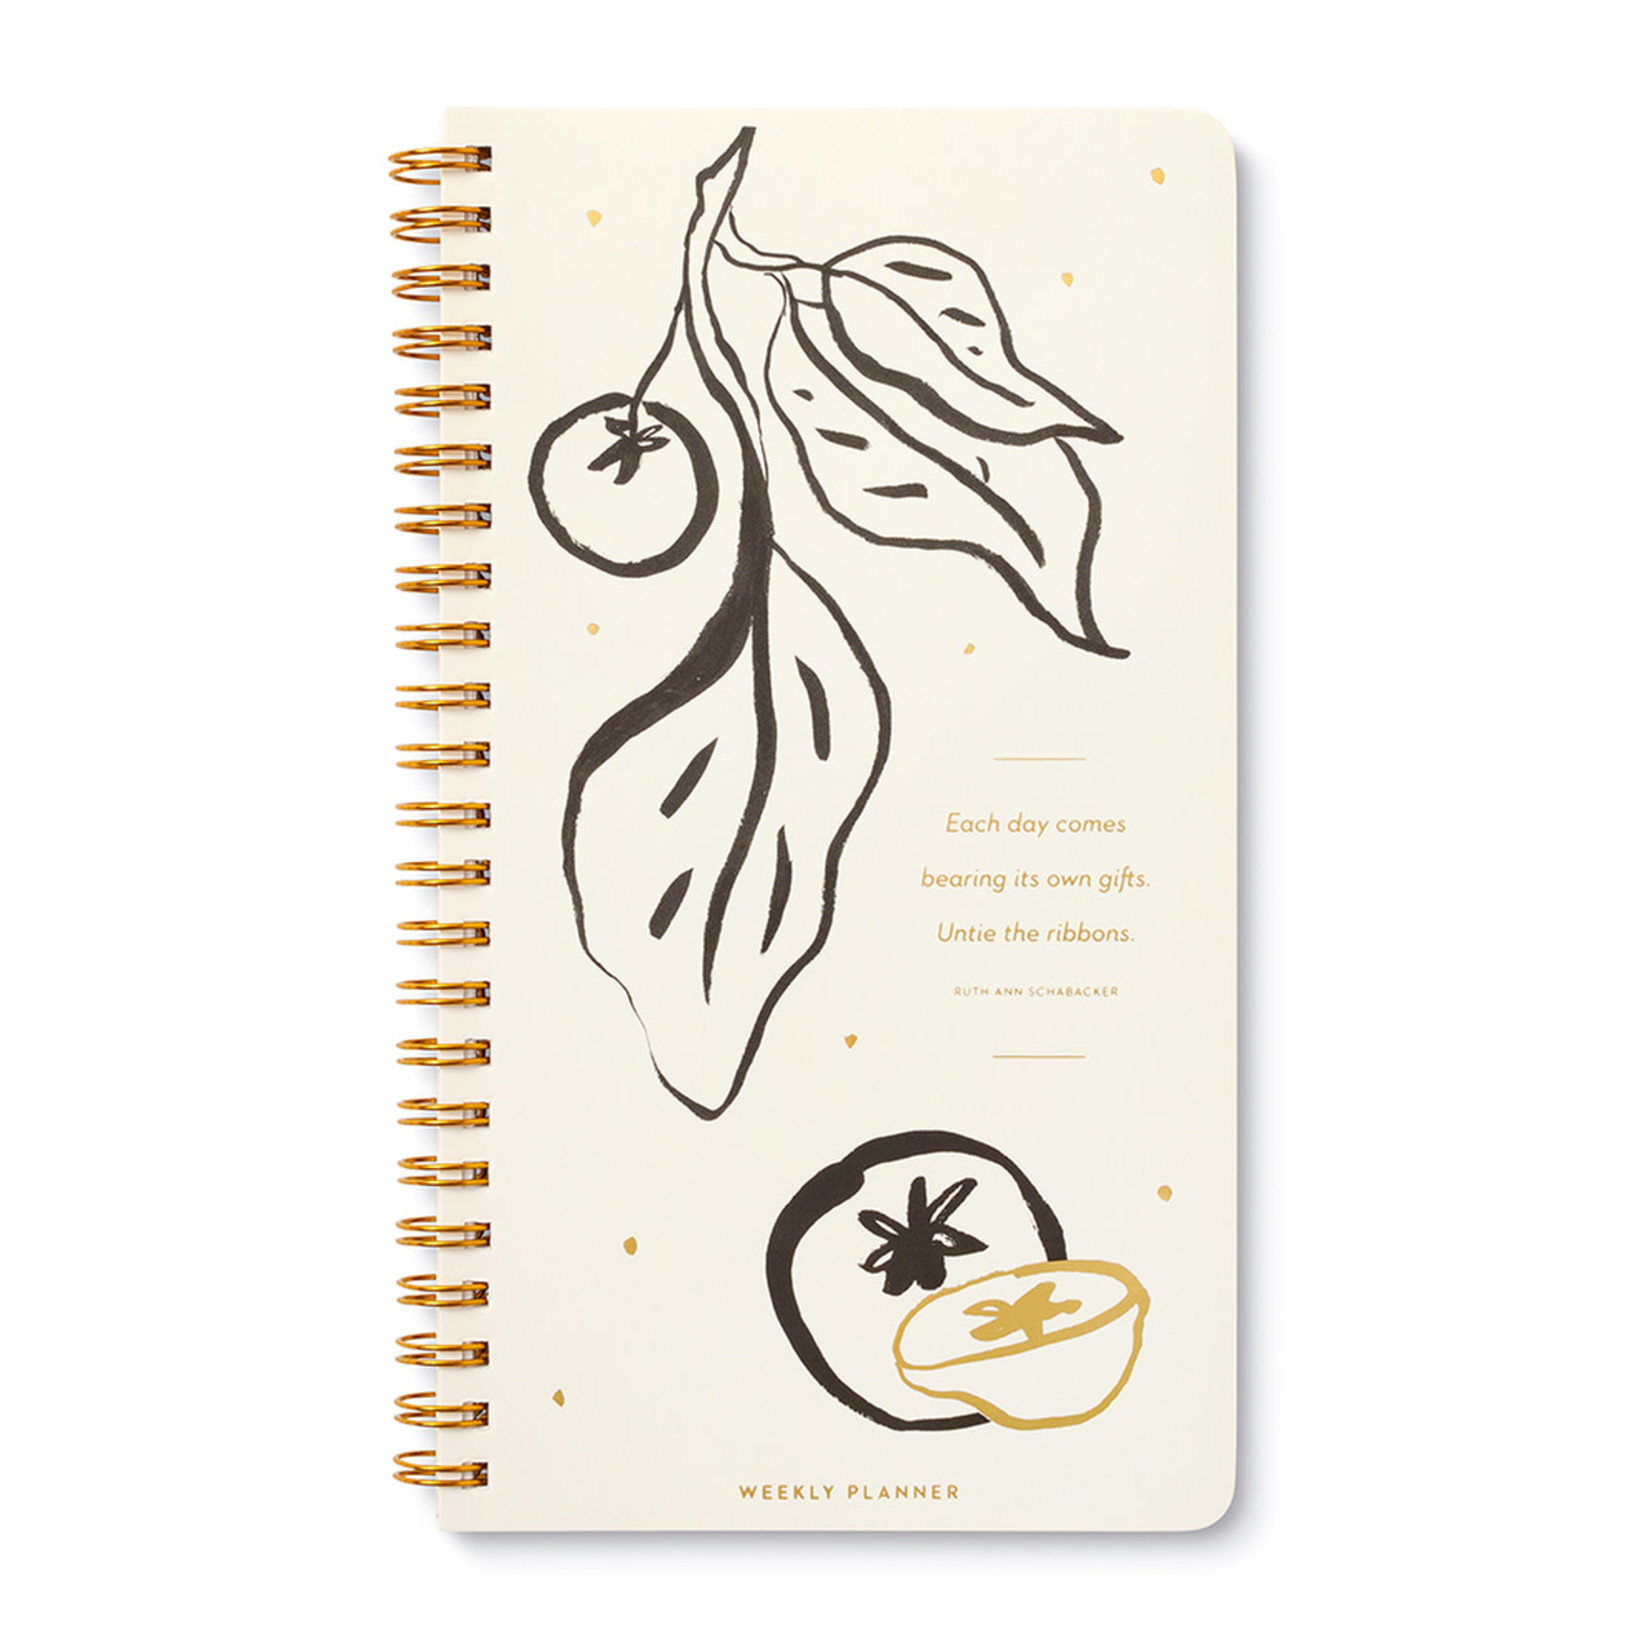 WEEKLY PLANNER - EACH DAY COMES BEARING ITS OWN GIFTS